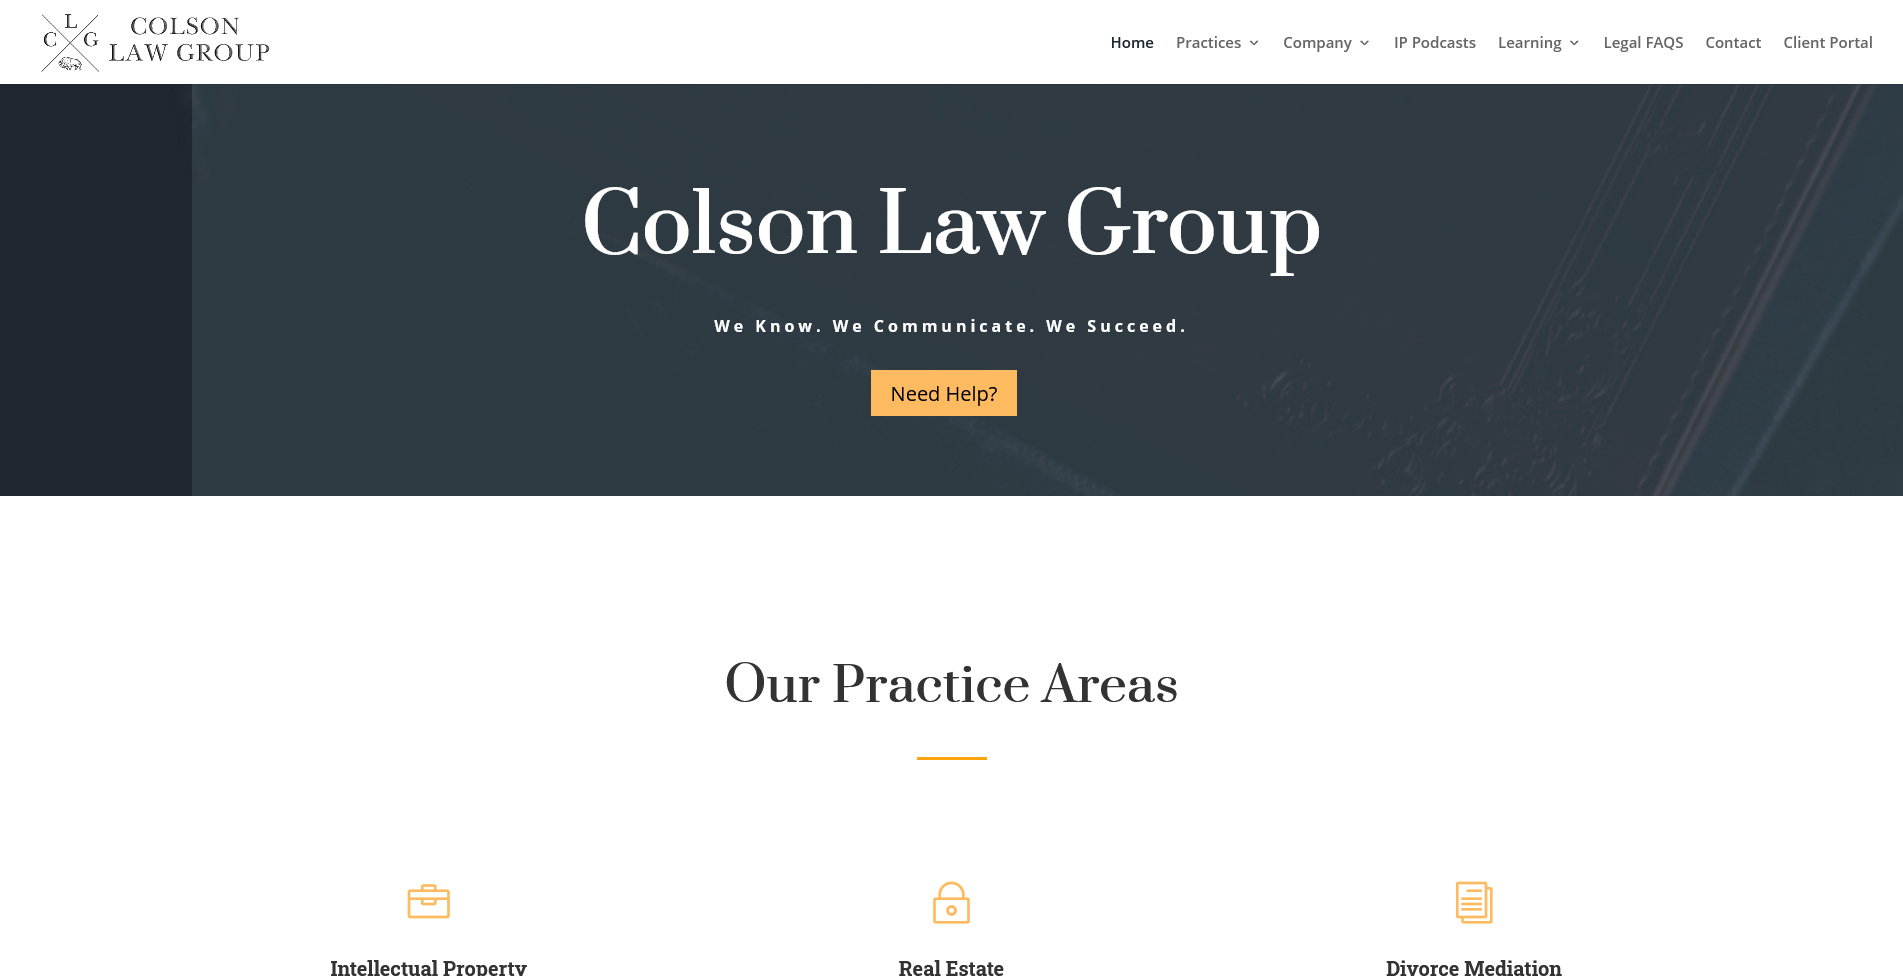 Colson Law Group